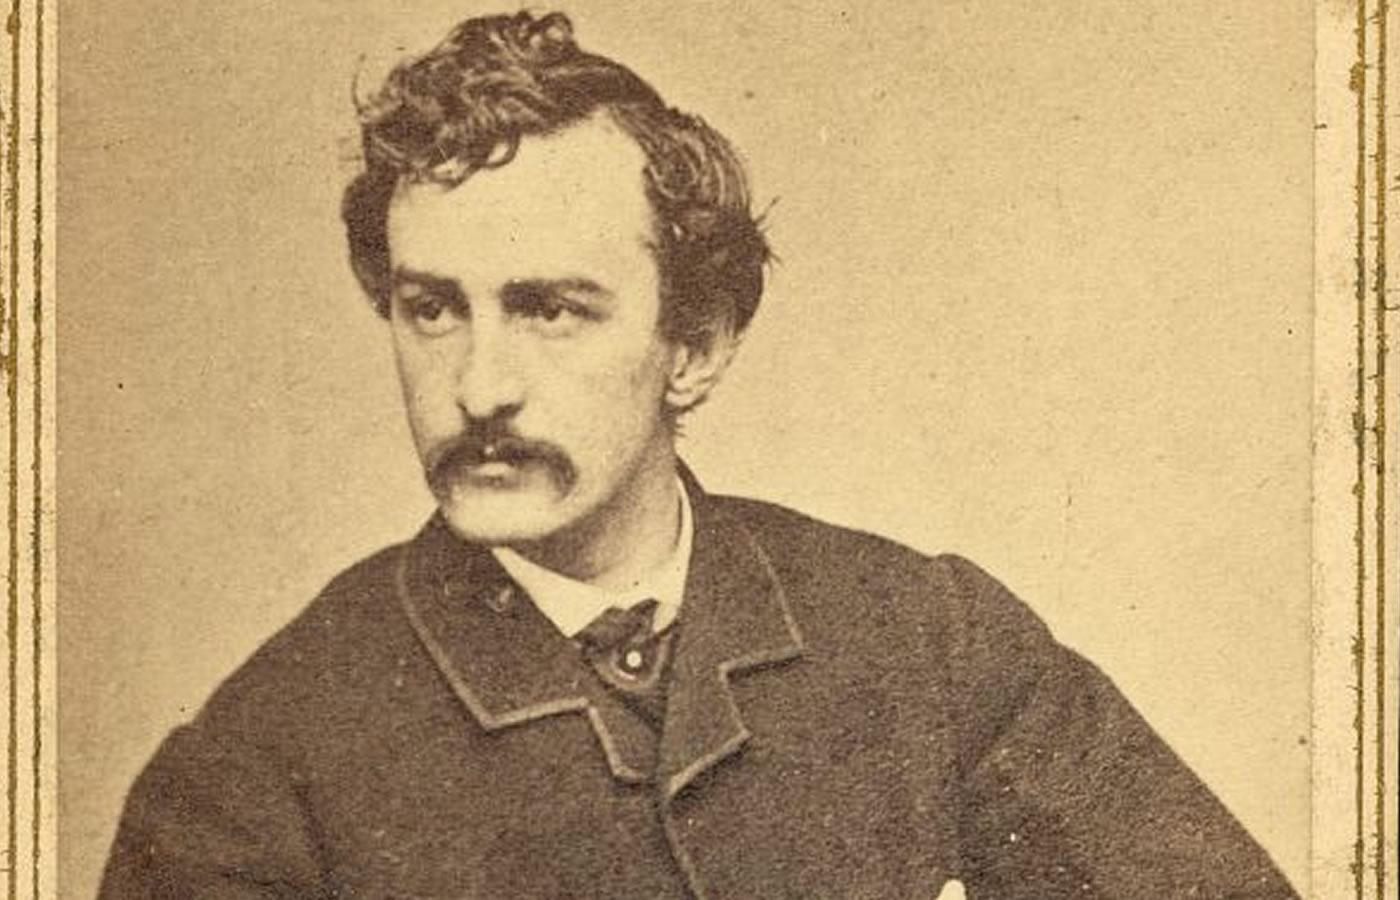 Assassin John Wilkes Booth sepia toned carte de visite photograph. Image shows the actor with hand on his hip, looking left. He has a brown bushy mustache and full head of wavy brown hair.